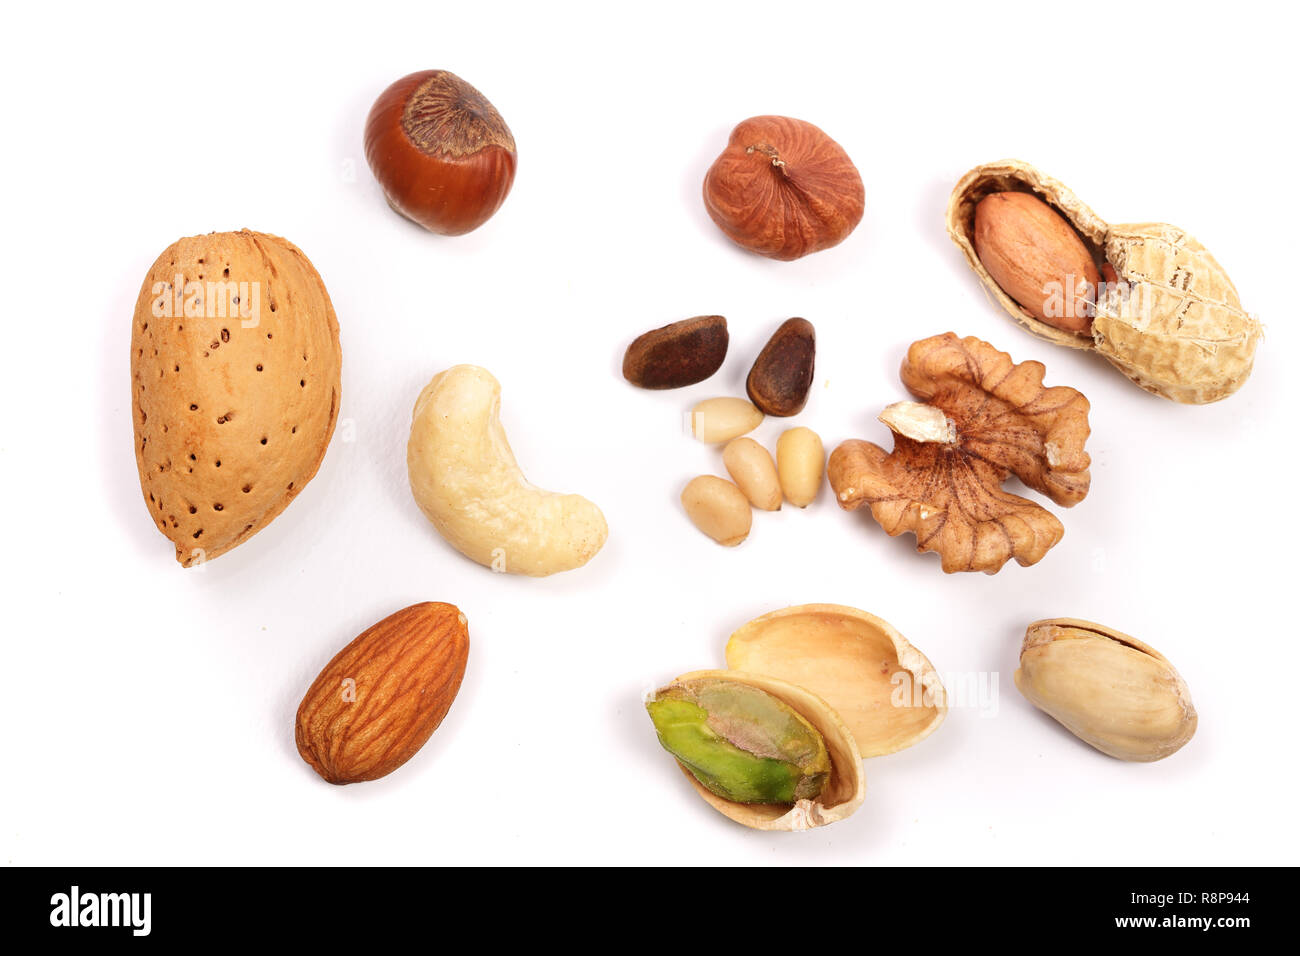 mixed of nuts isolated on white background  Almonds, cashews